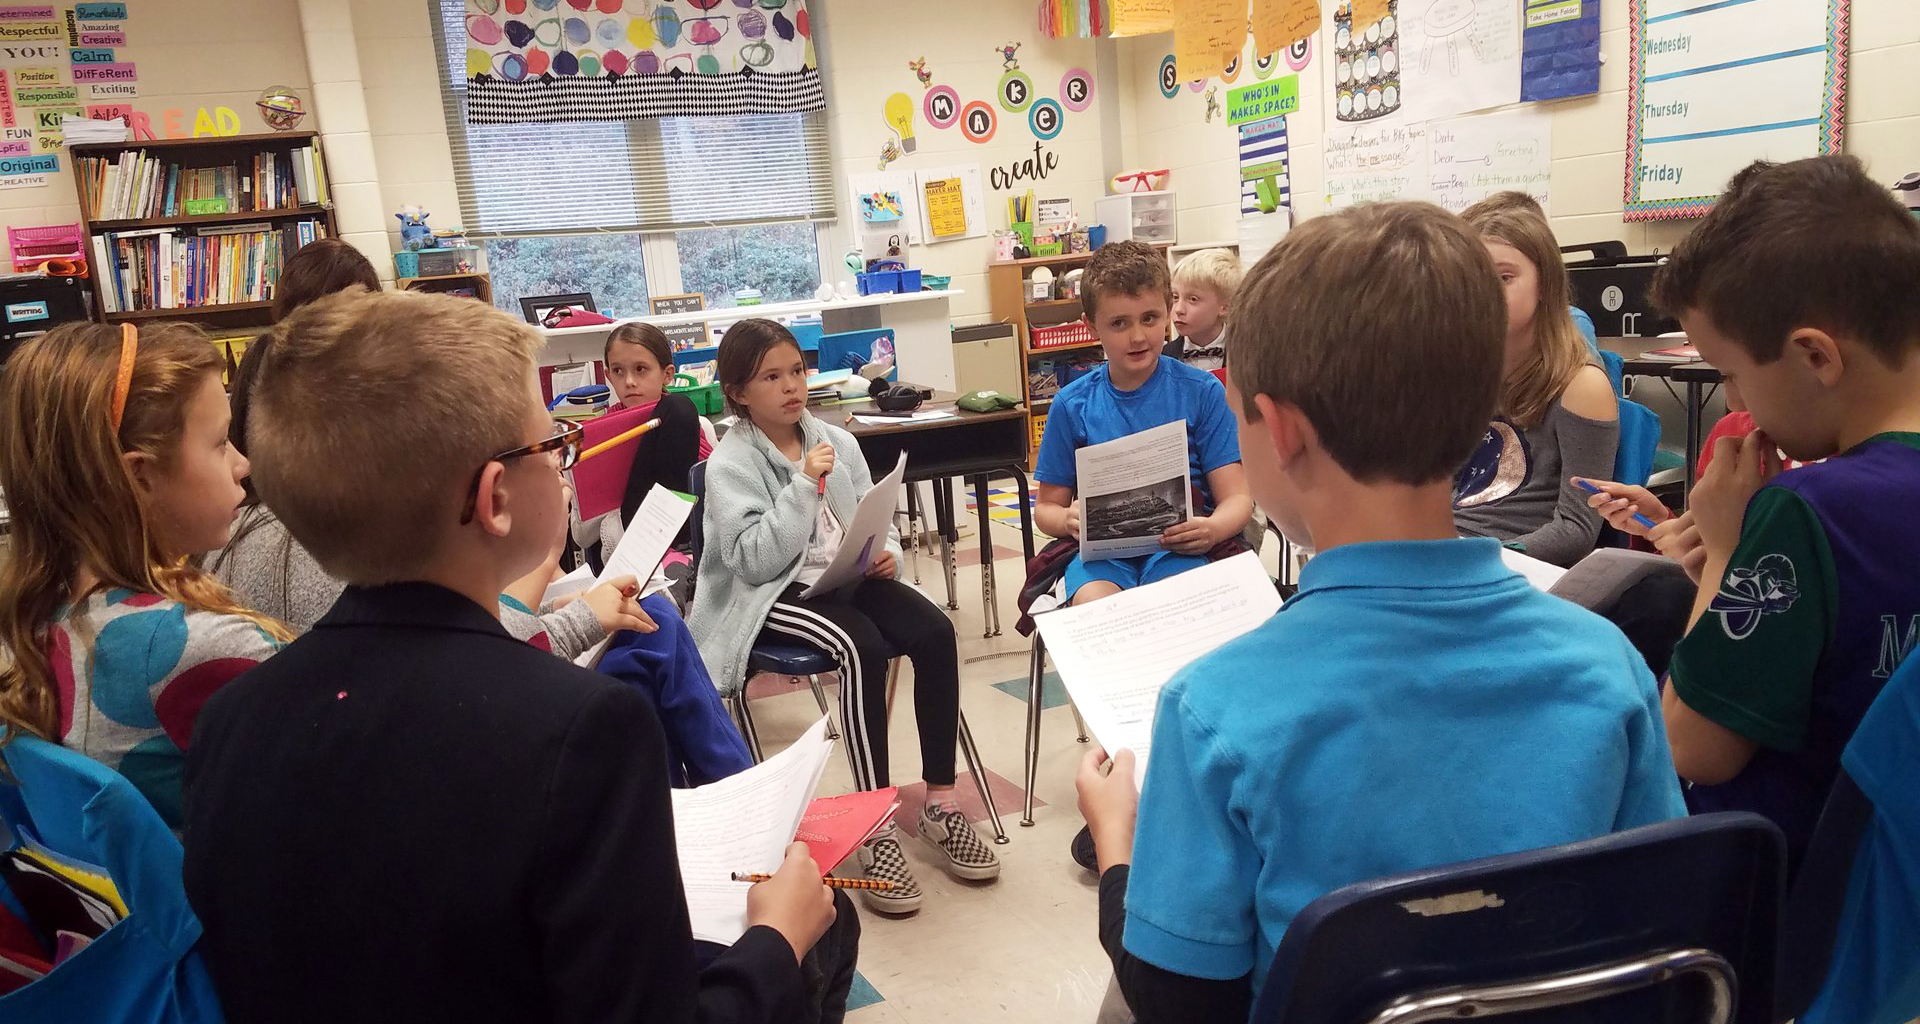 Students sitting in a circle in their classroom discussing a project.